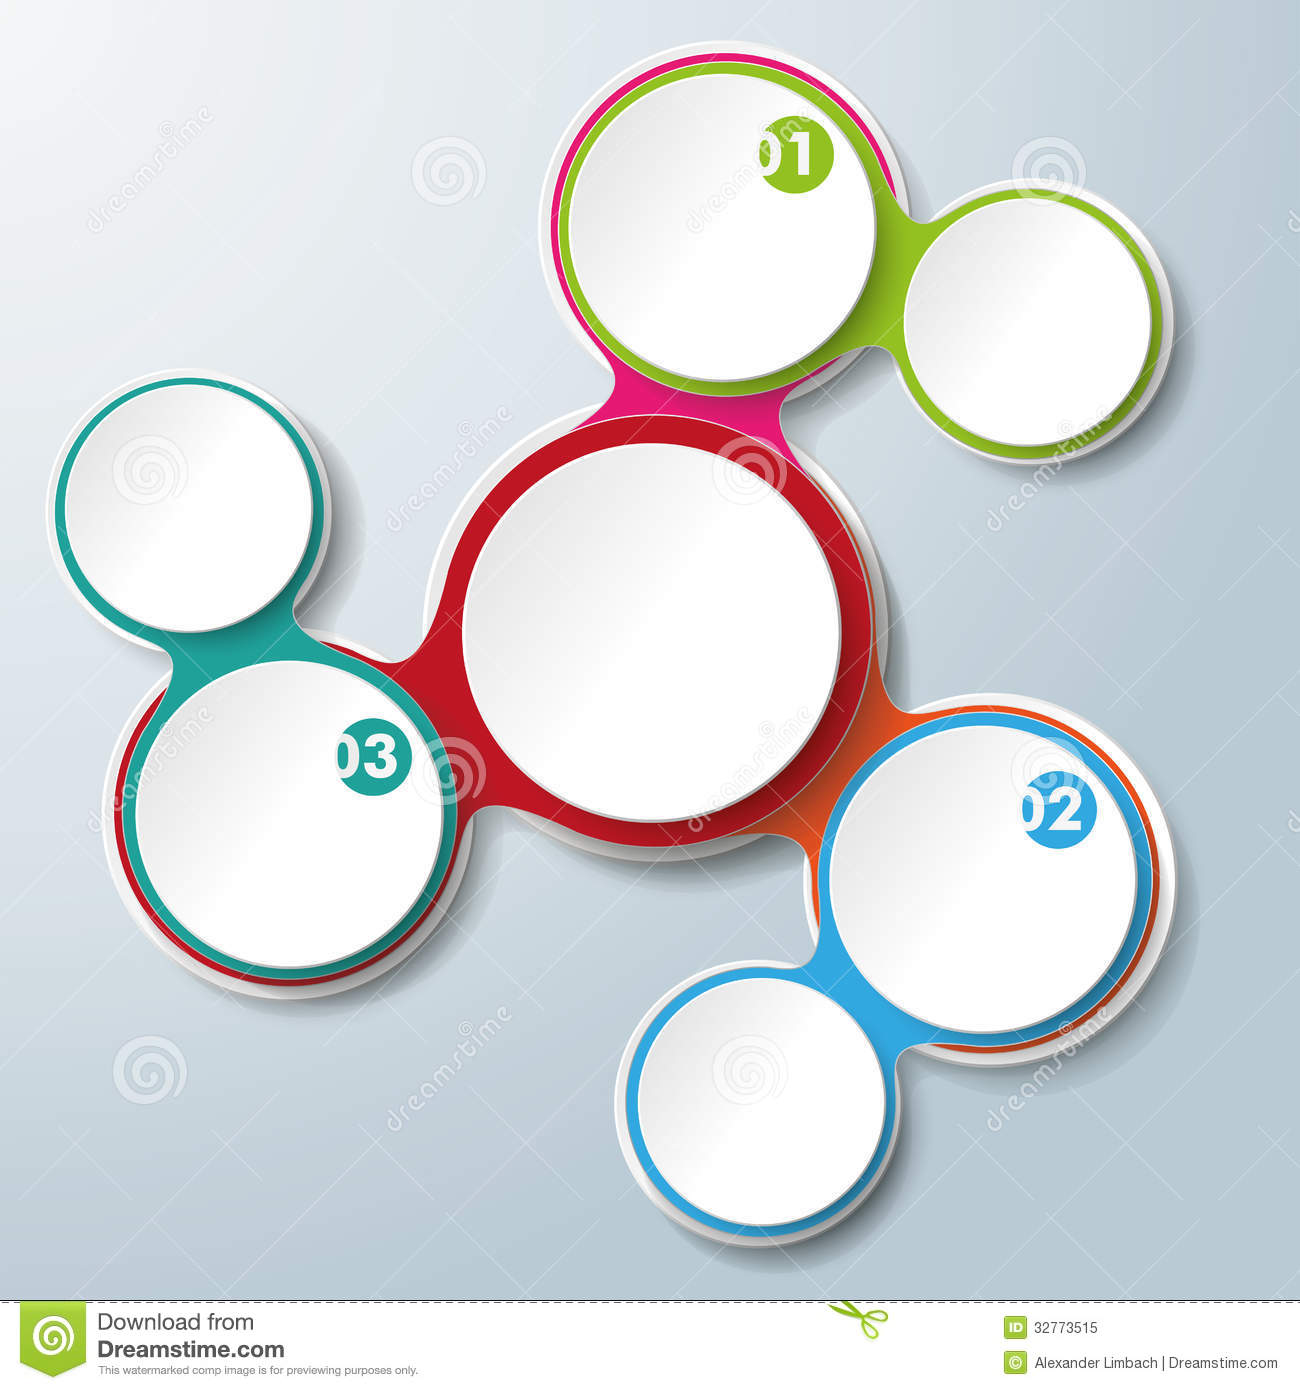 Infographic design on the grey background eps 10 vector file - Infographic Design Colored Chains White Circles 3 Options